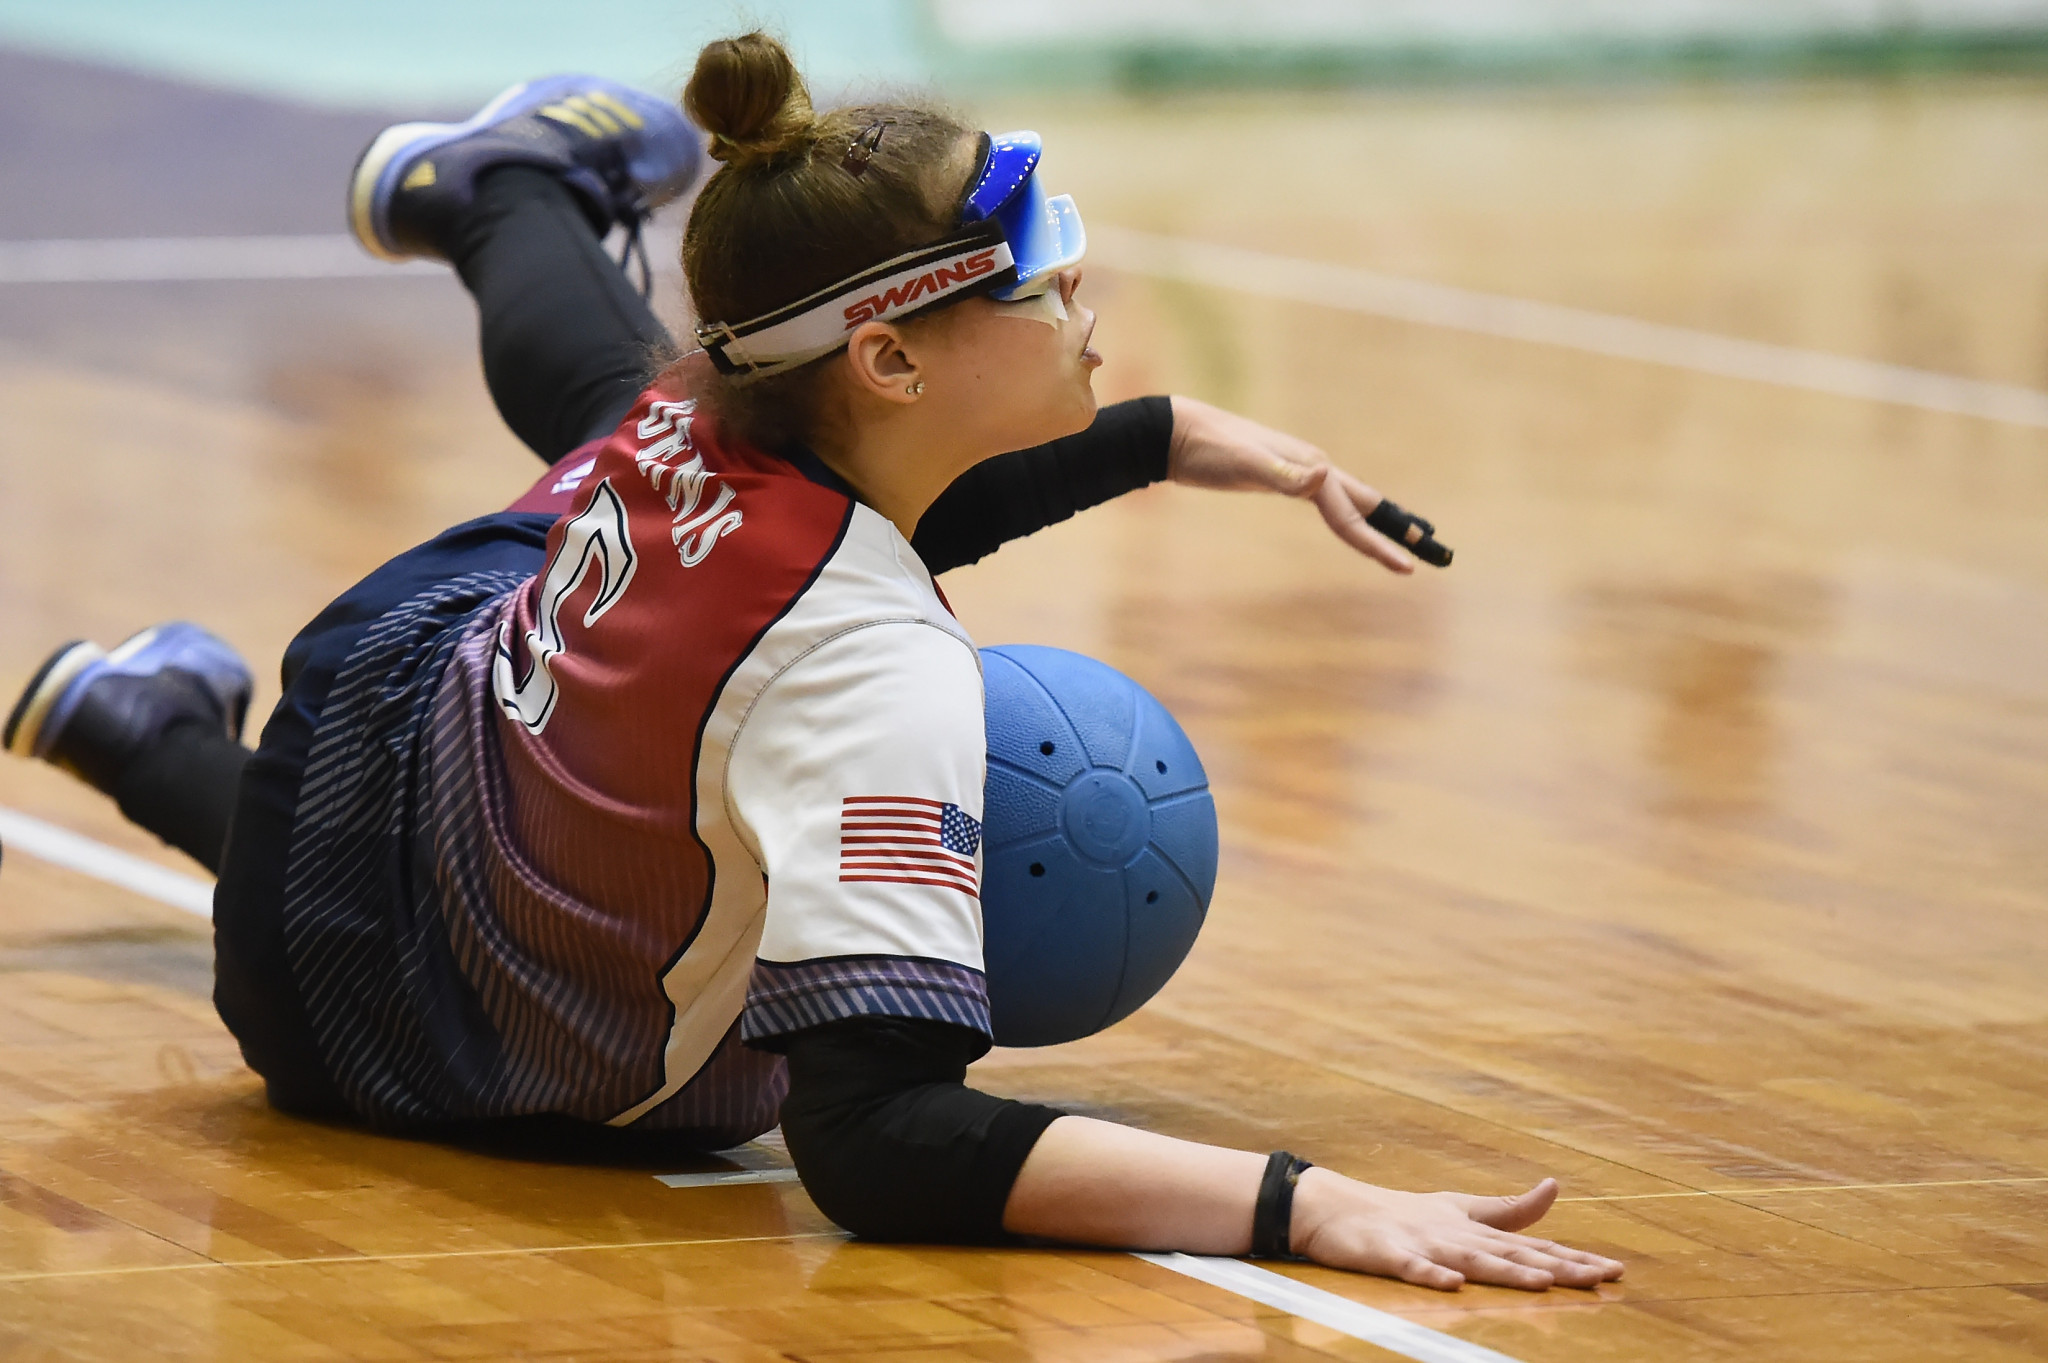 New road crossings built in Fort Wayne for IBSA Goalball and Judo International Qualifier